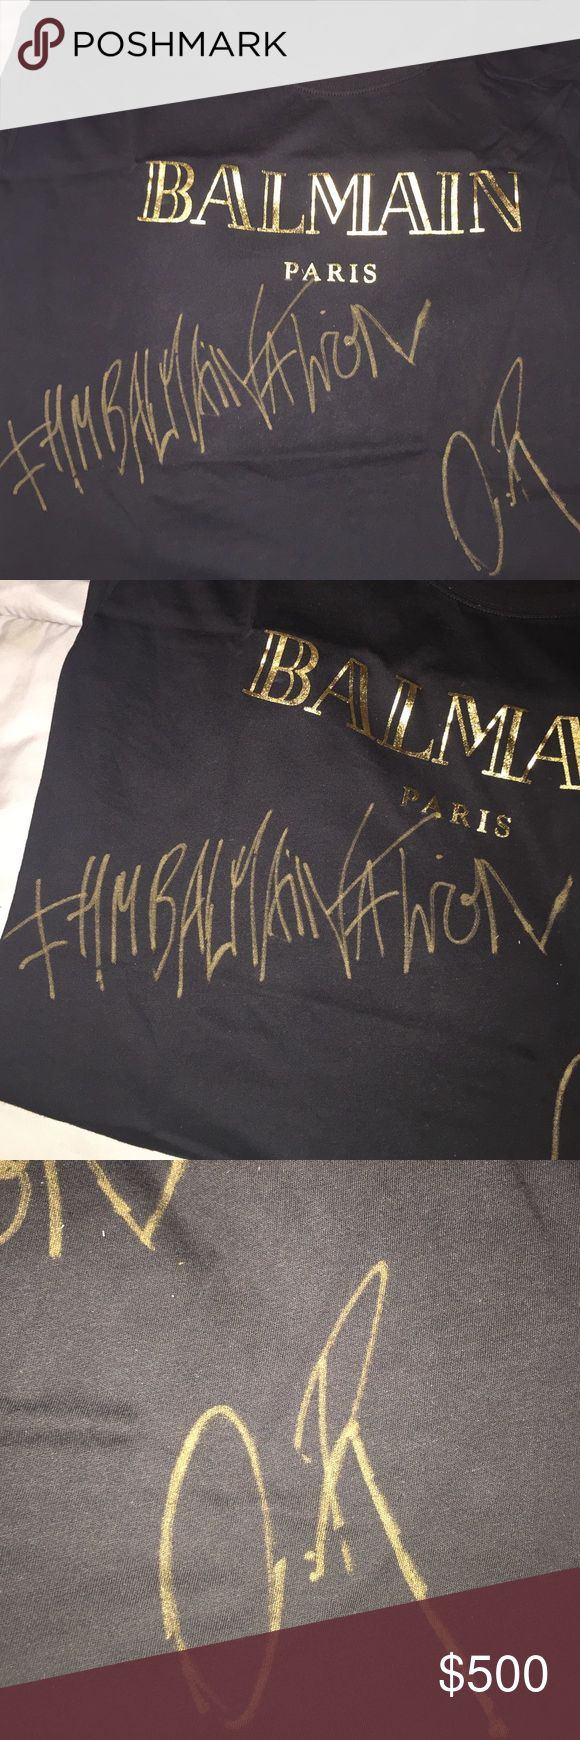 BALMAIN t-shirt signed by Olivier Rousteing Won the H&M & BALMAIN collaboration contest. Shirt is from their new line. Black shirt with gold BALMAIN Paris. #HMBALMAINATION Signed O.R (Olivier Rousteing) Balmain Tops